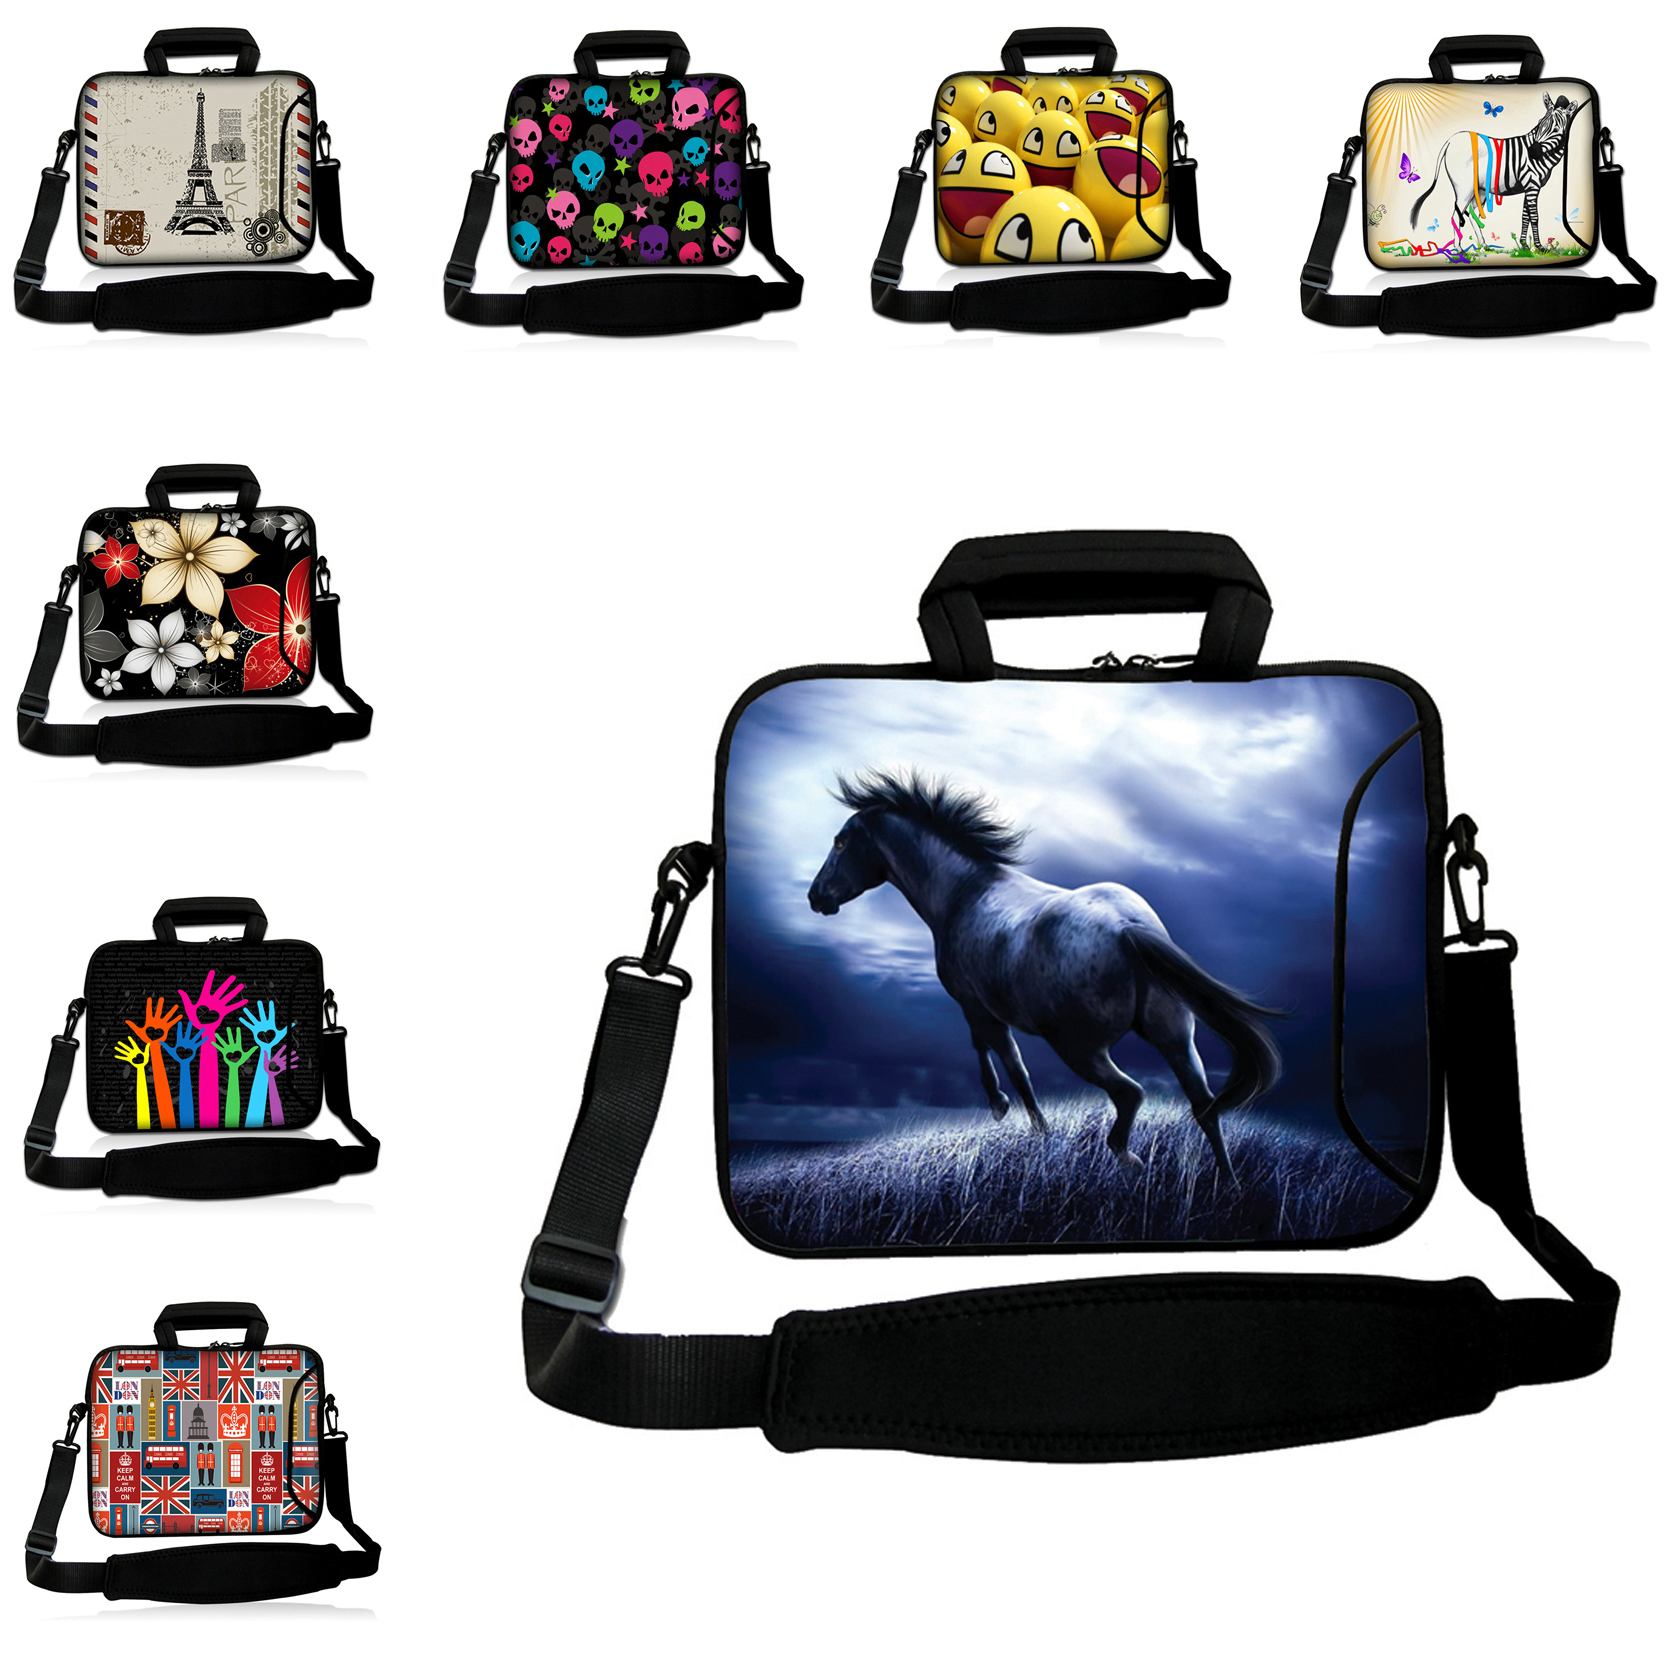 Sleeve Soft Laptop Cases 14 14.4 14.2 14.1 inch Shoulder Strap Messenger Notebook Bags For Asus Sony Acer HP Latest Computer Bag<br><br>Aliexpress